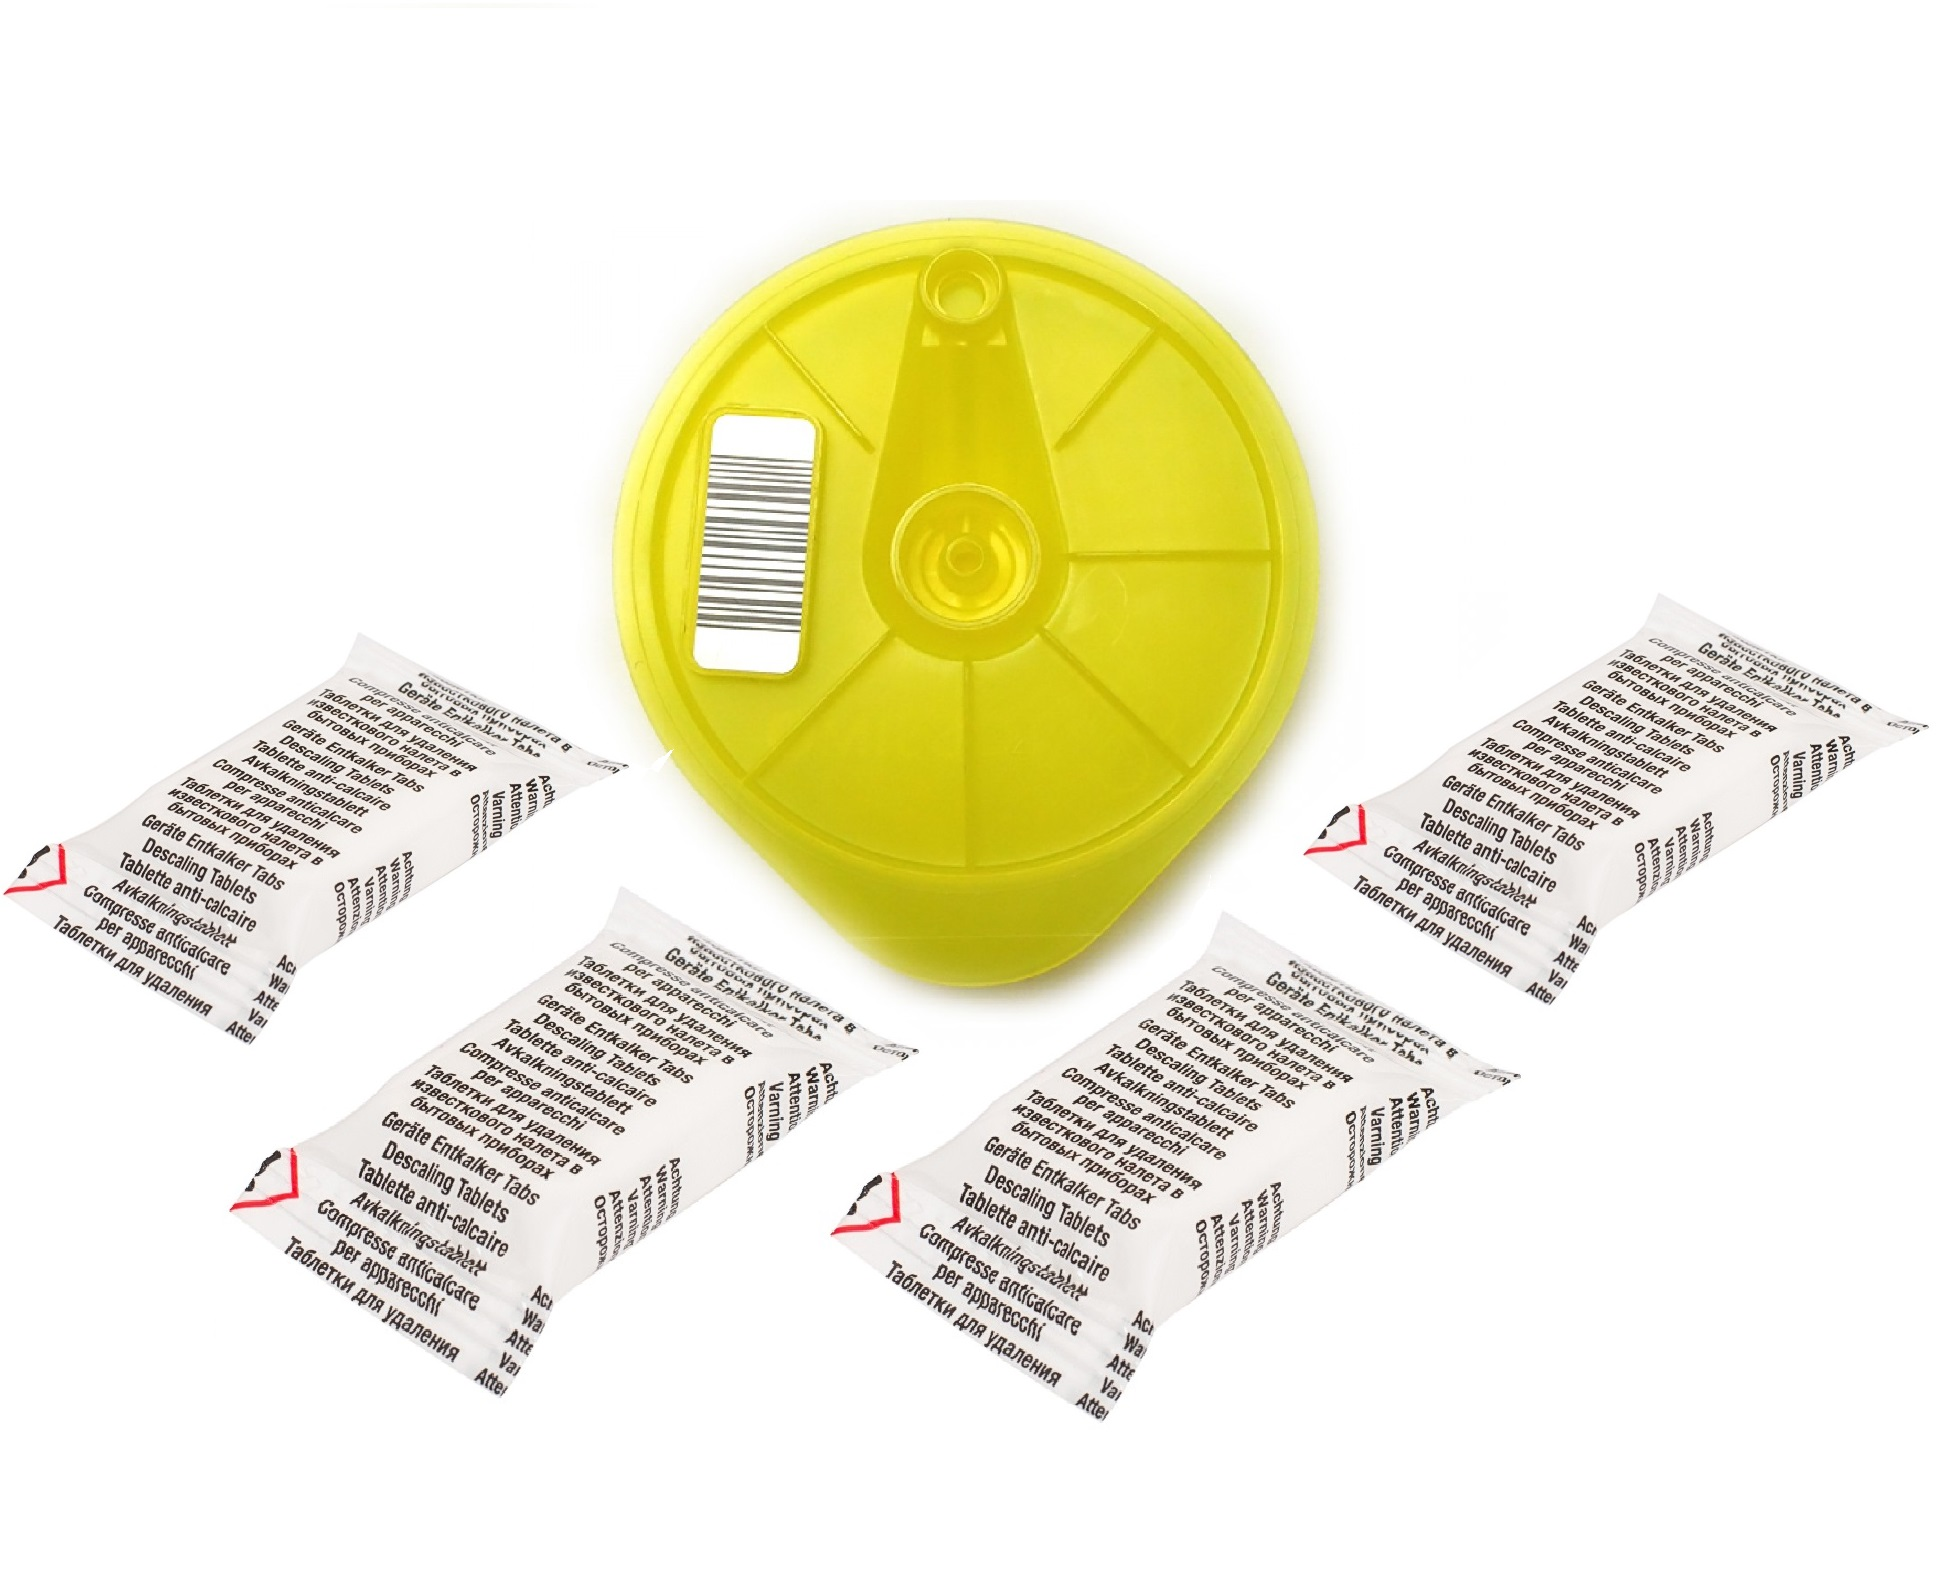 Tassimo Cleaning Service Disc 4 Descaling Tablets 611632 617771 576836 621101 Yellow